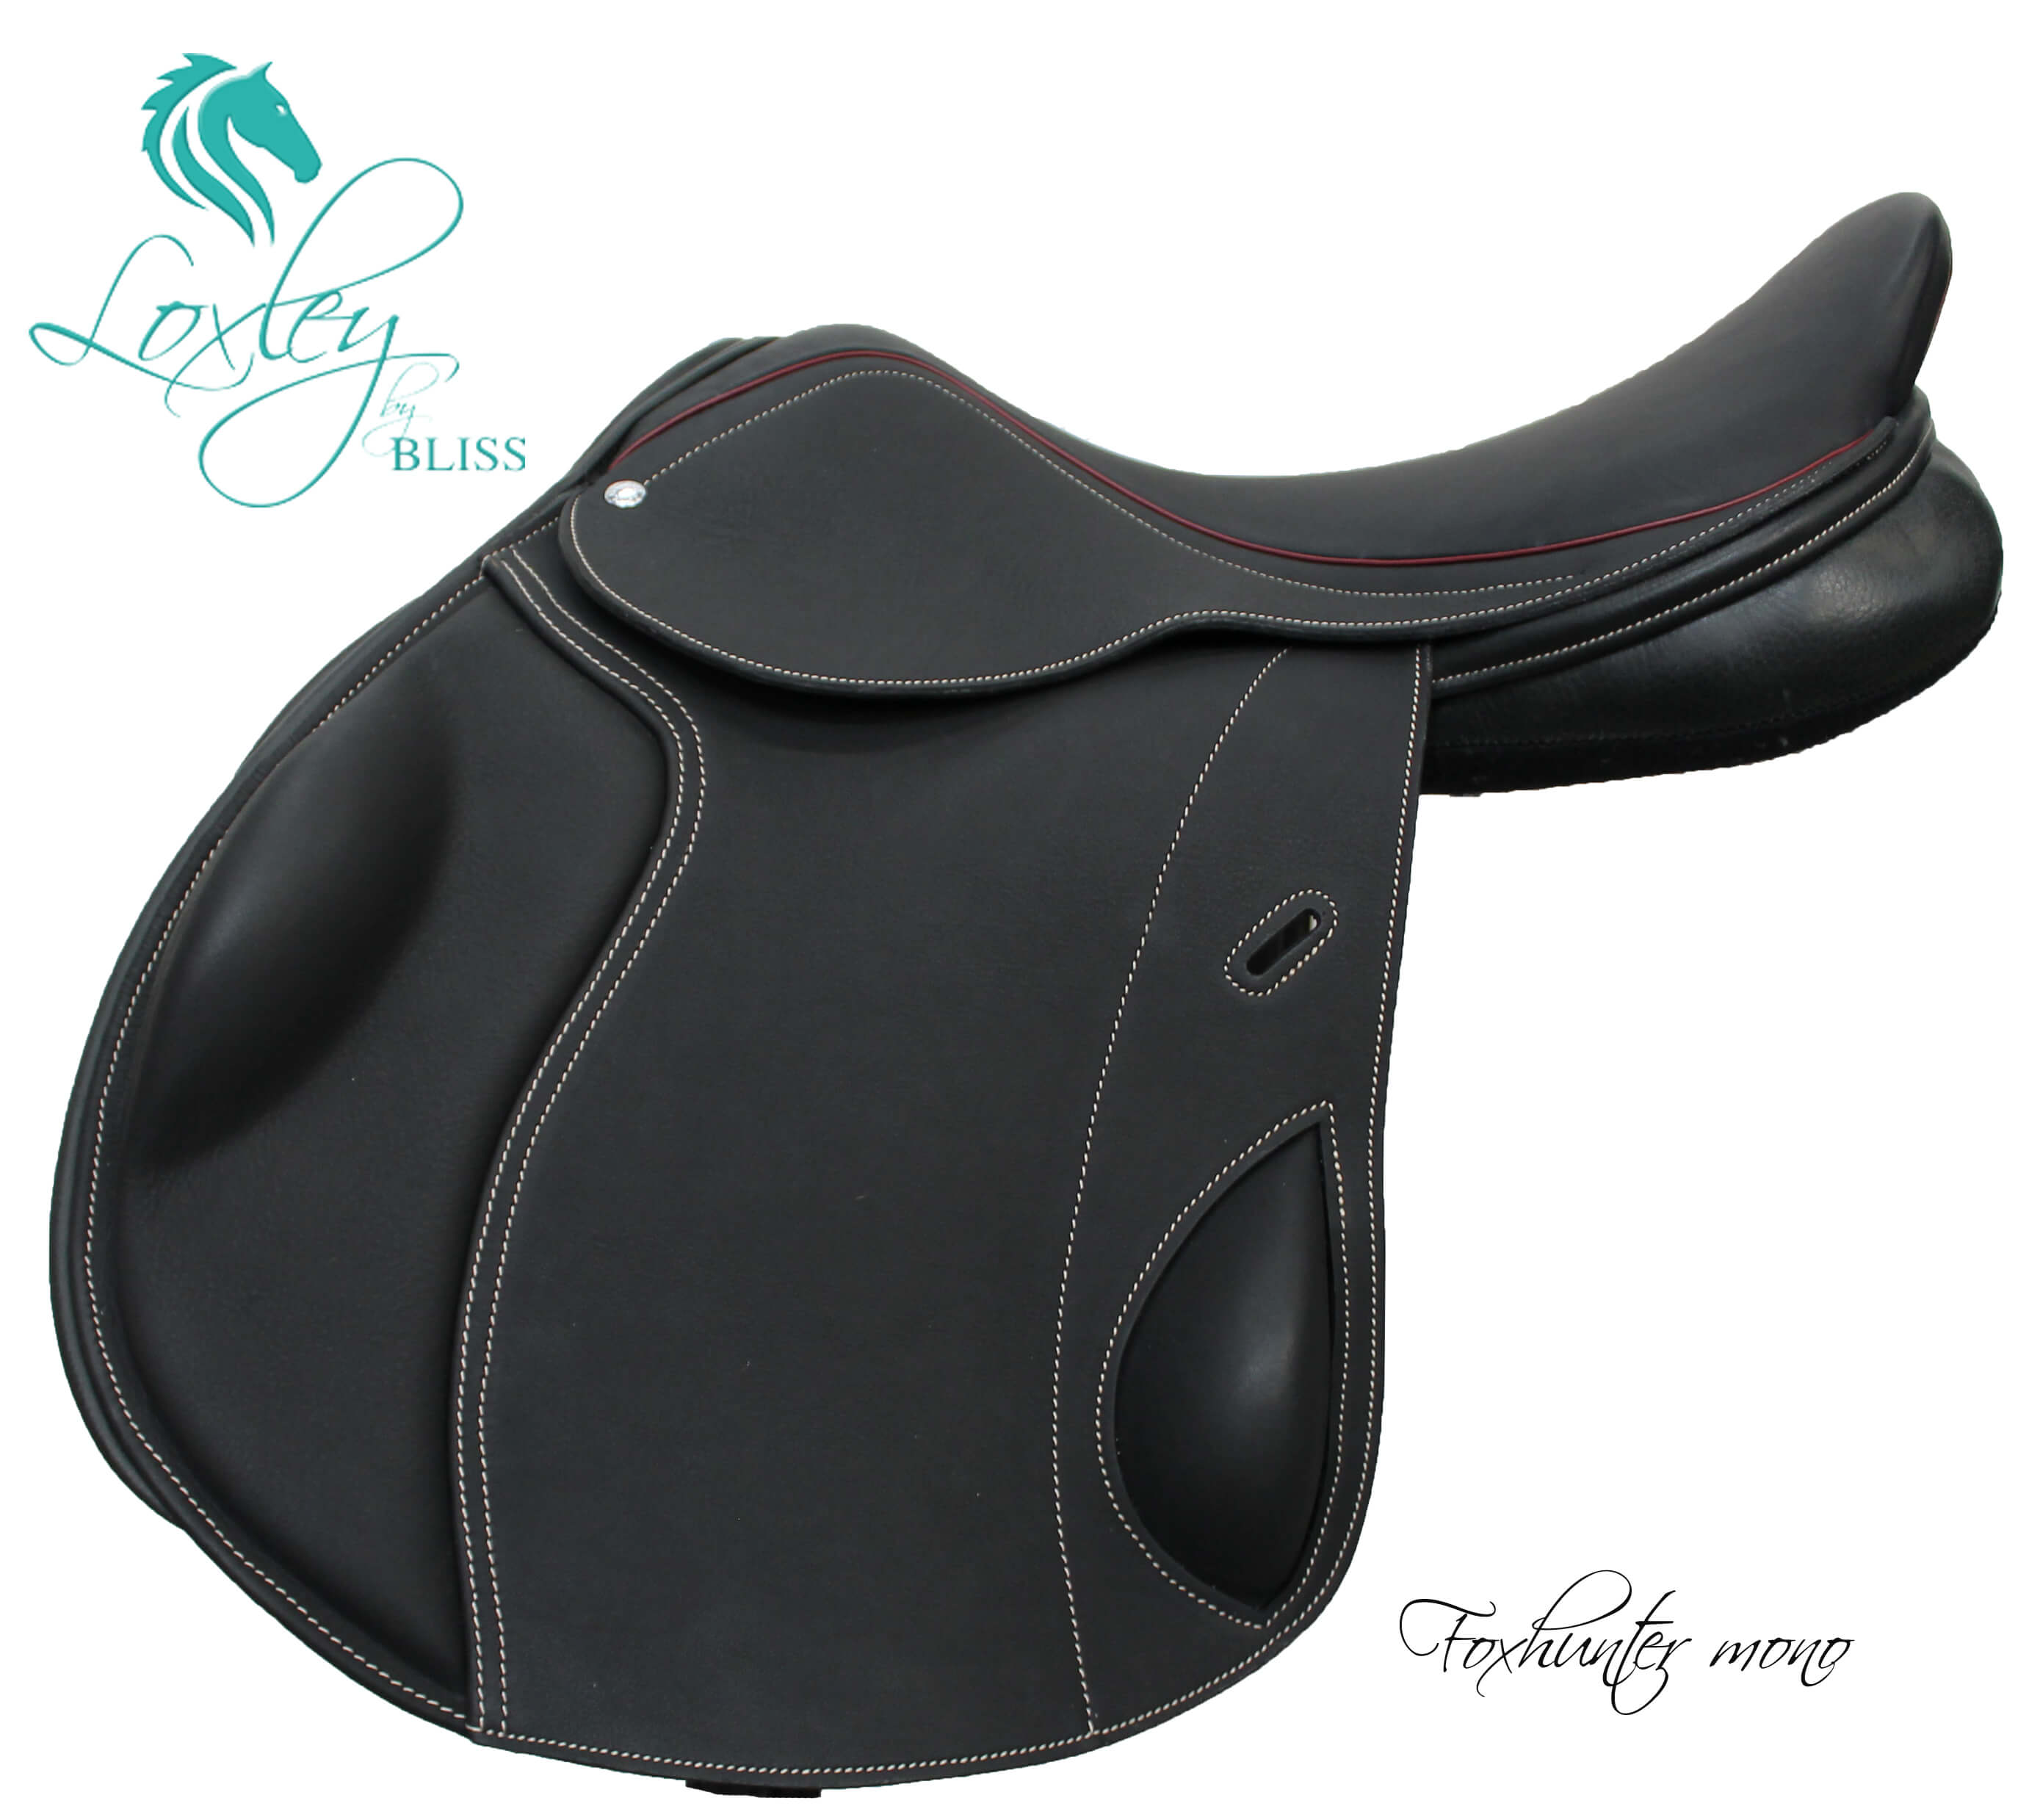 2 18085 Loxley Saddle Image Template